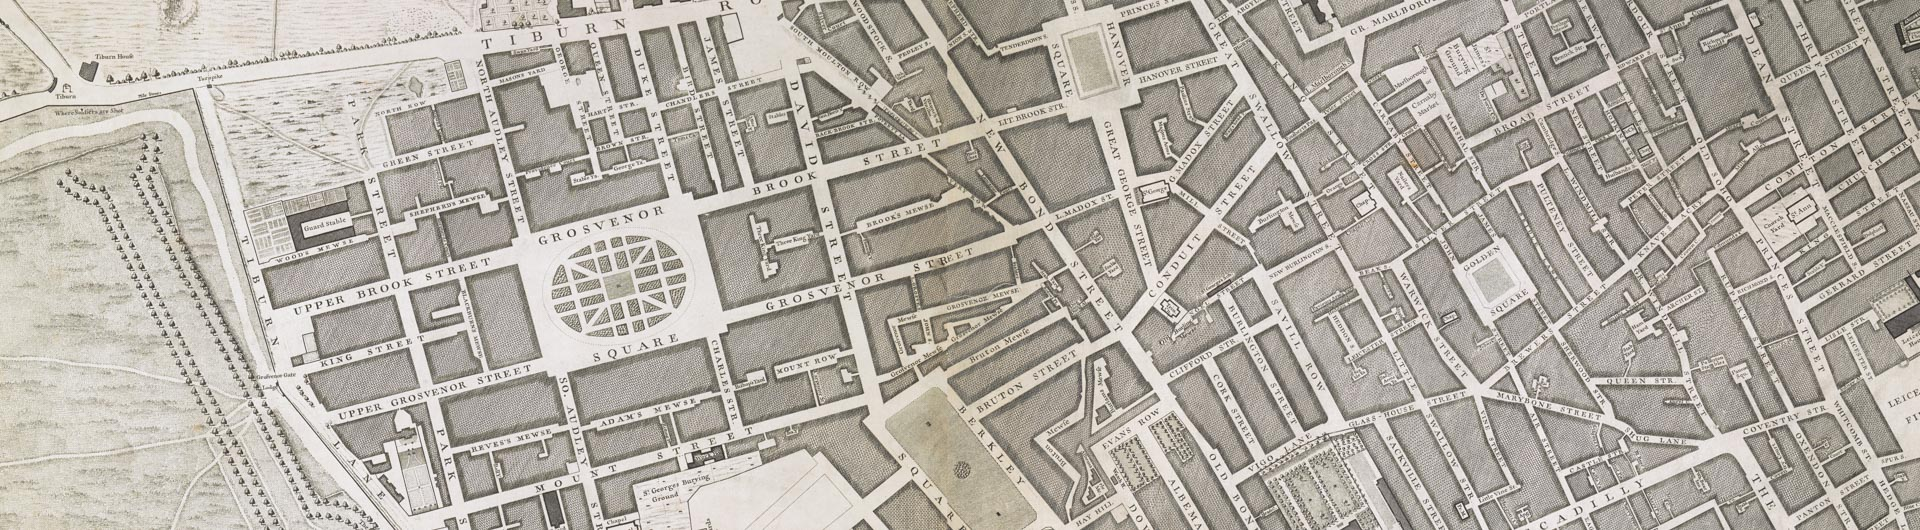 John Rocque, A Plan of the Cities of London and Westminster, The Borough of Southwark, And the Contiguous Buildings [...]  Engraved from an Actual Survey made by John Rocque (London: 1745) © British Library Board (Cartographic Items Maps Crace Port. 3.104, sheets A2 and B2)